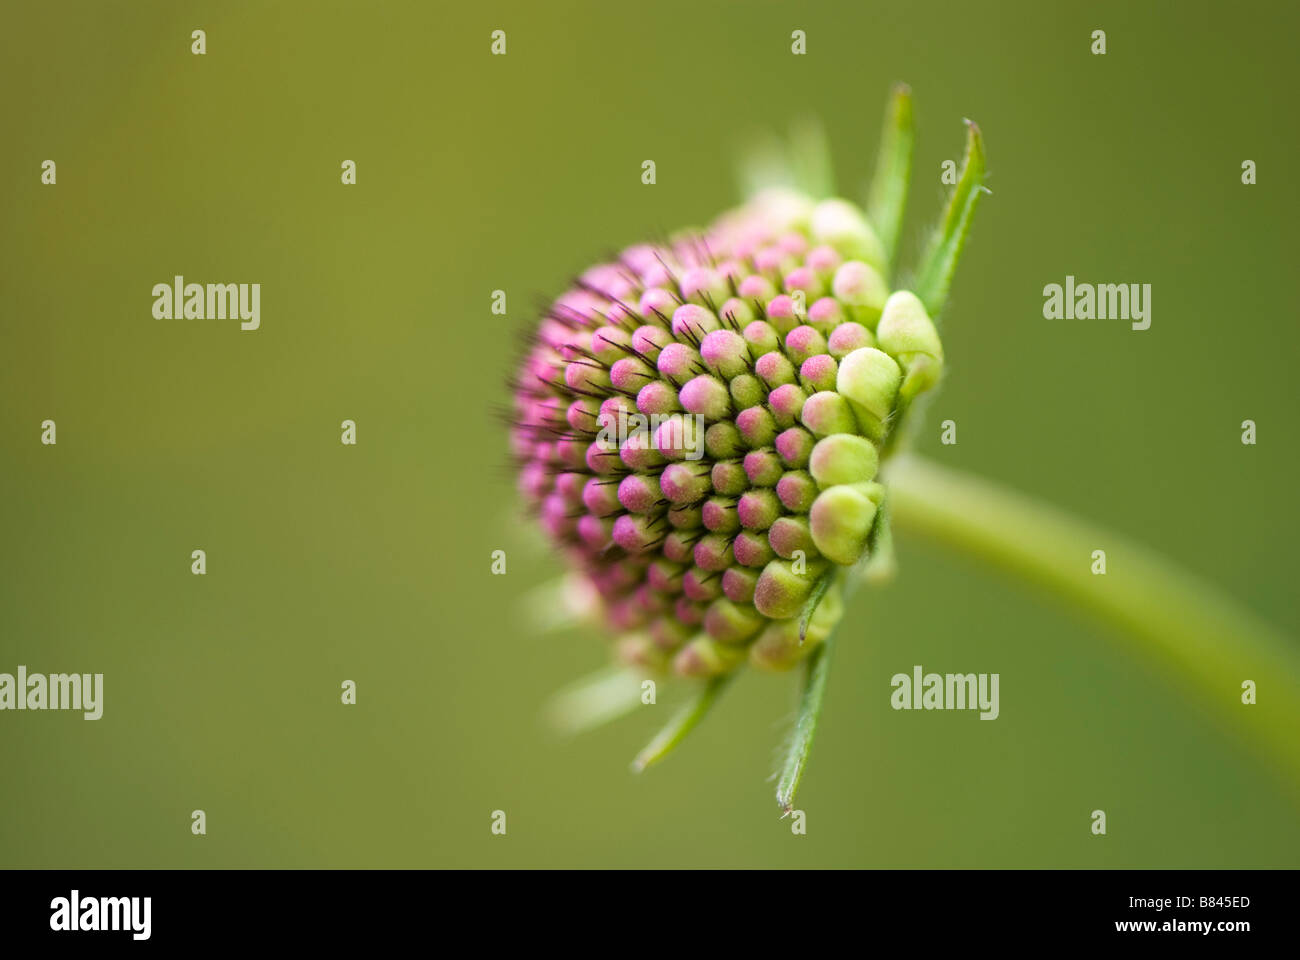 Close up of scabious flower in bud - Stock Image